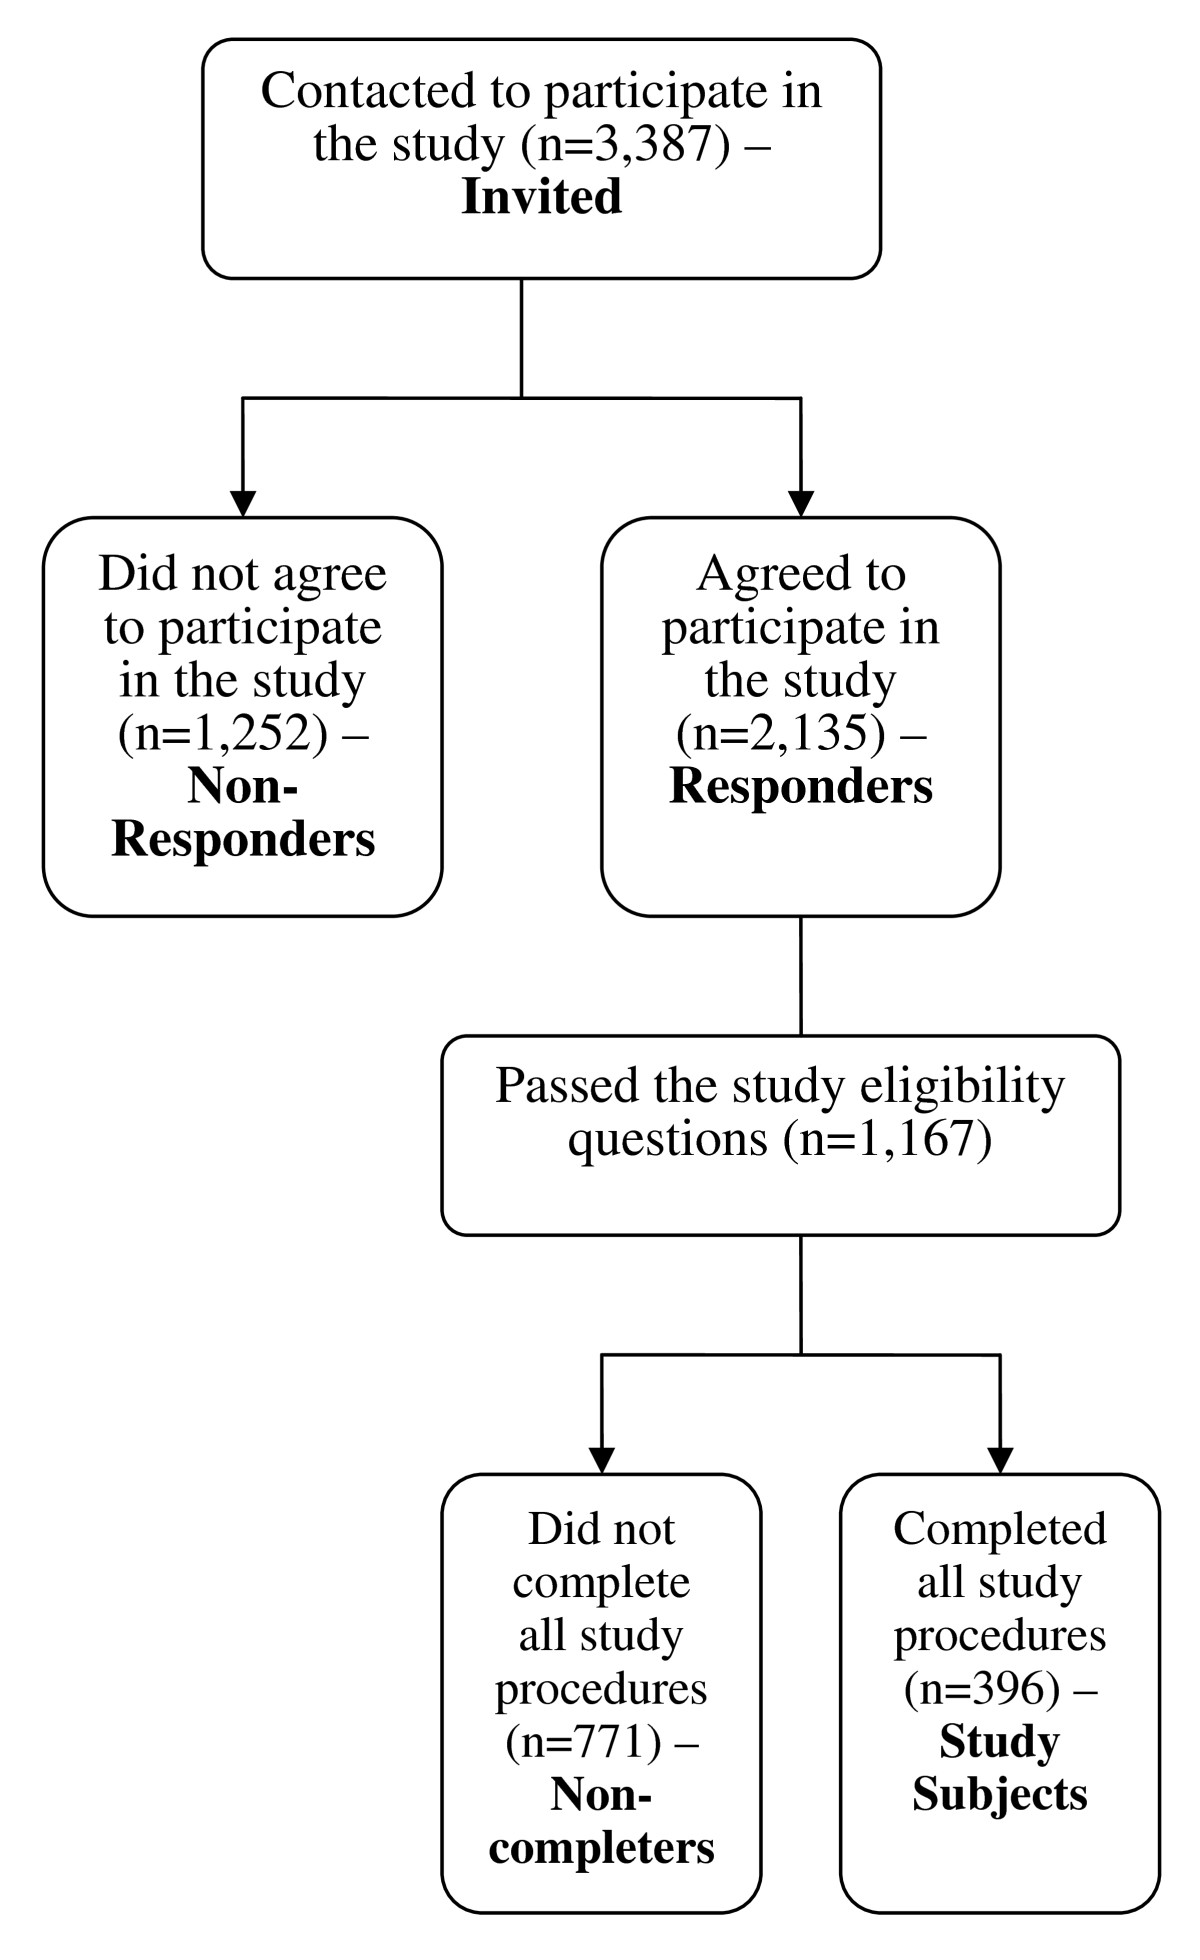 http://static-content.springer.com/image/art%3A10.1186%2F1477-7525-7-36/MediaObjects/12955_2008_Article_553_Fig1_HTML.jpg